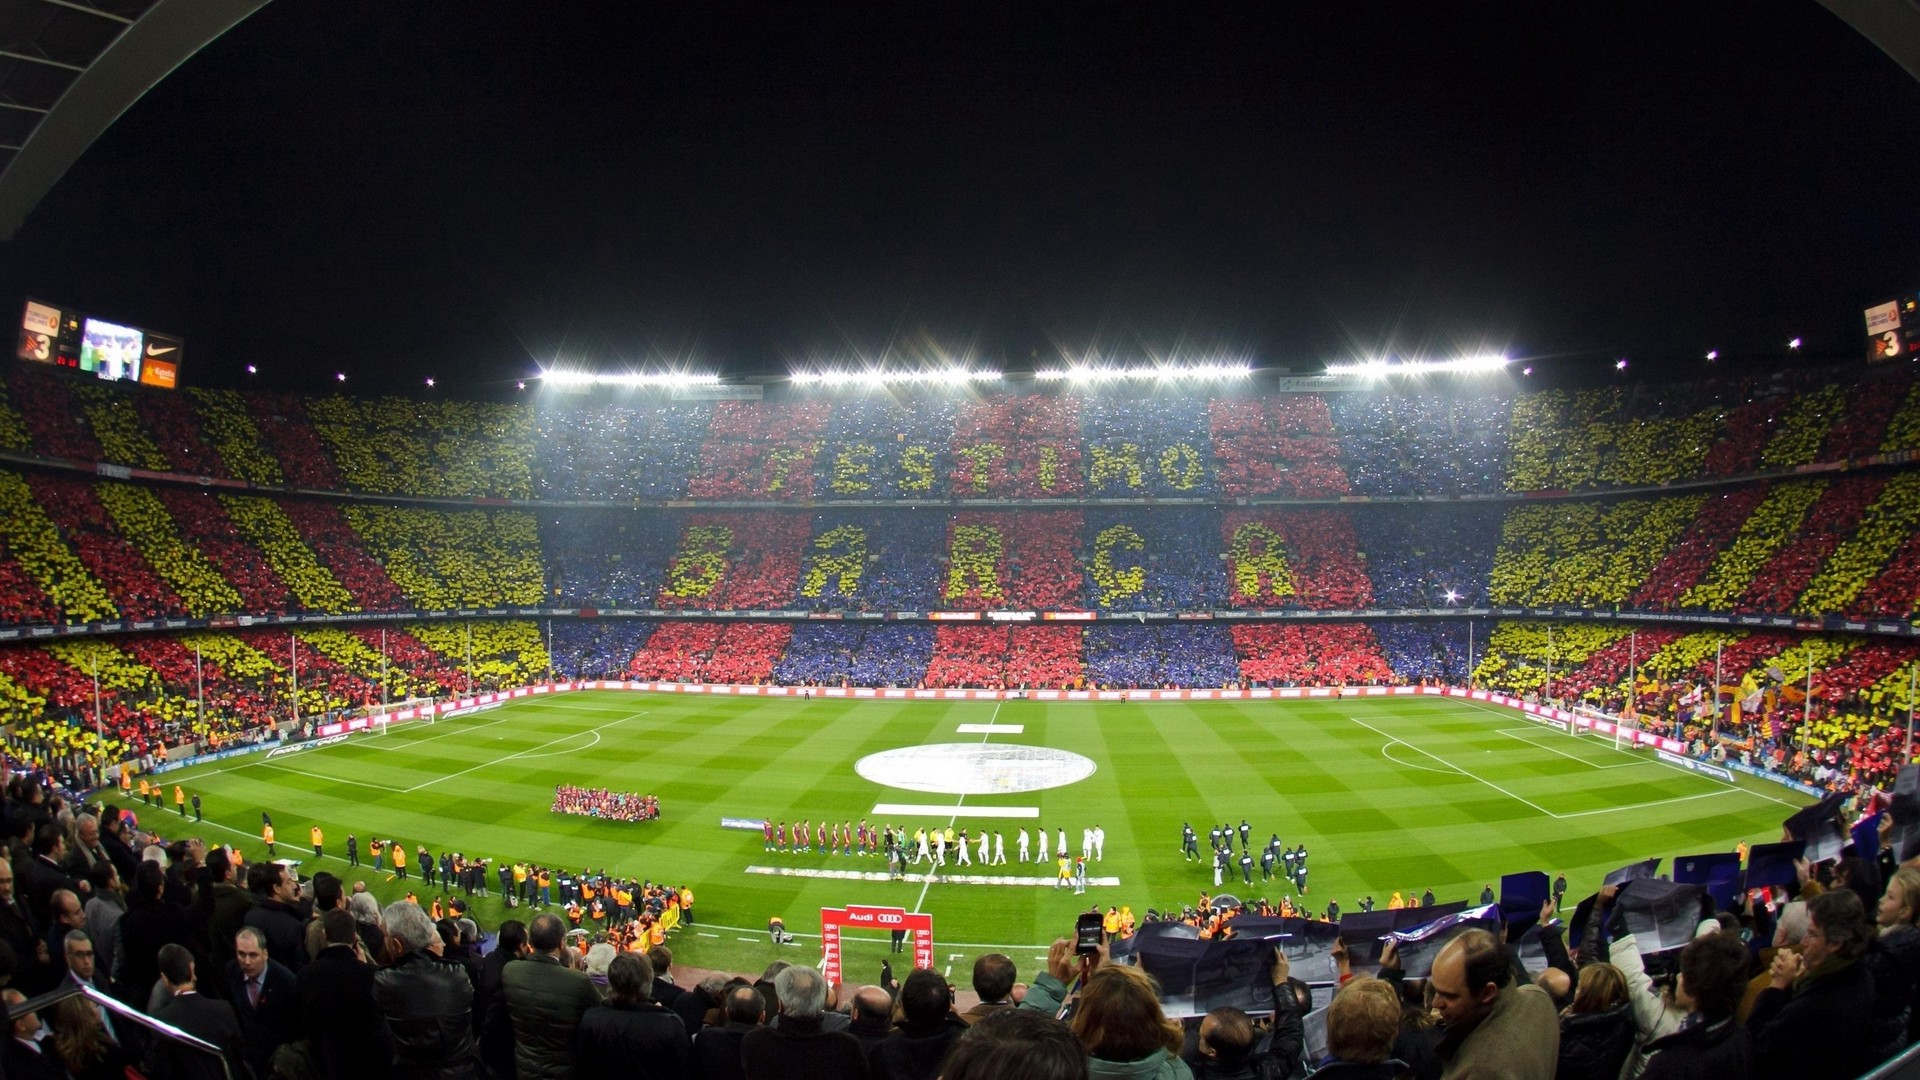 1920x1080  Wallpaper barcelona, camp nou, stadium